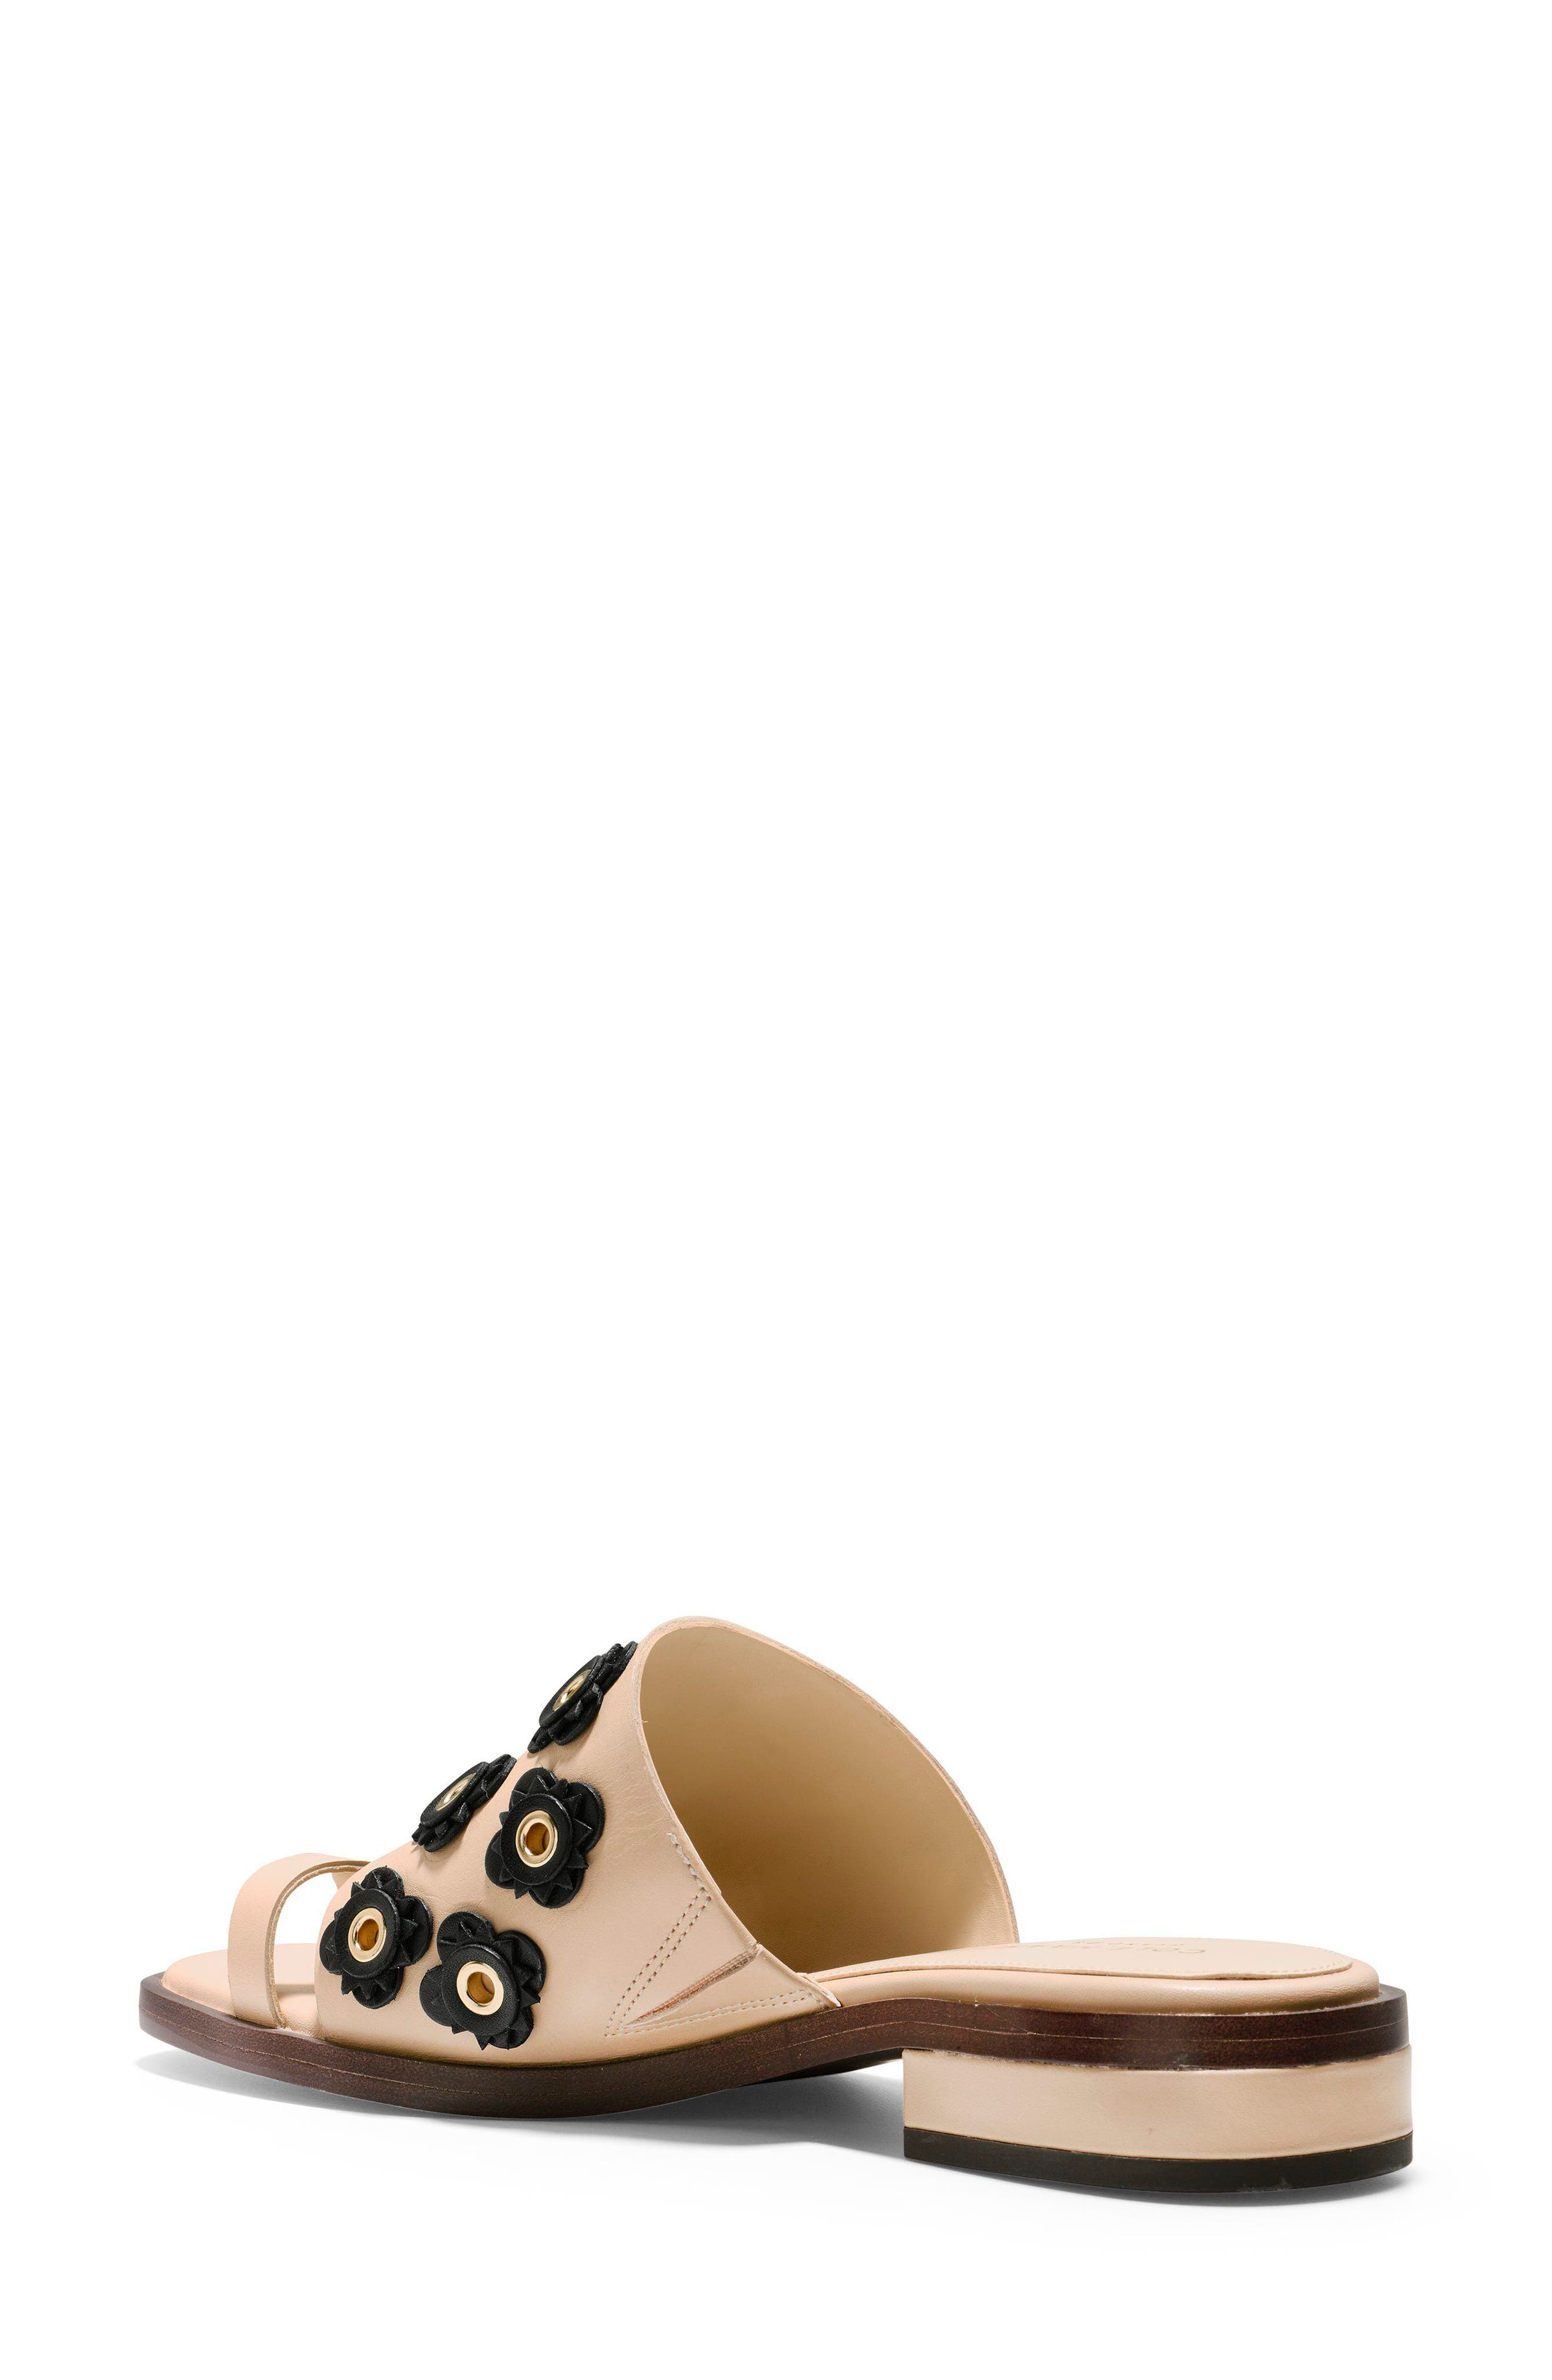 Carly Floral Sandal,                             Alternate thumbnail 2, color,                             Nude/ Black Leather